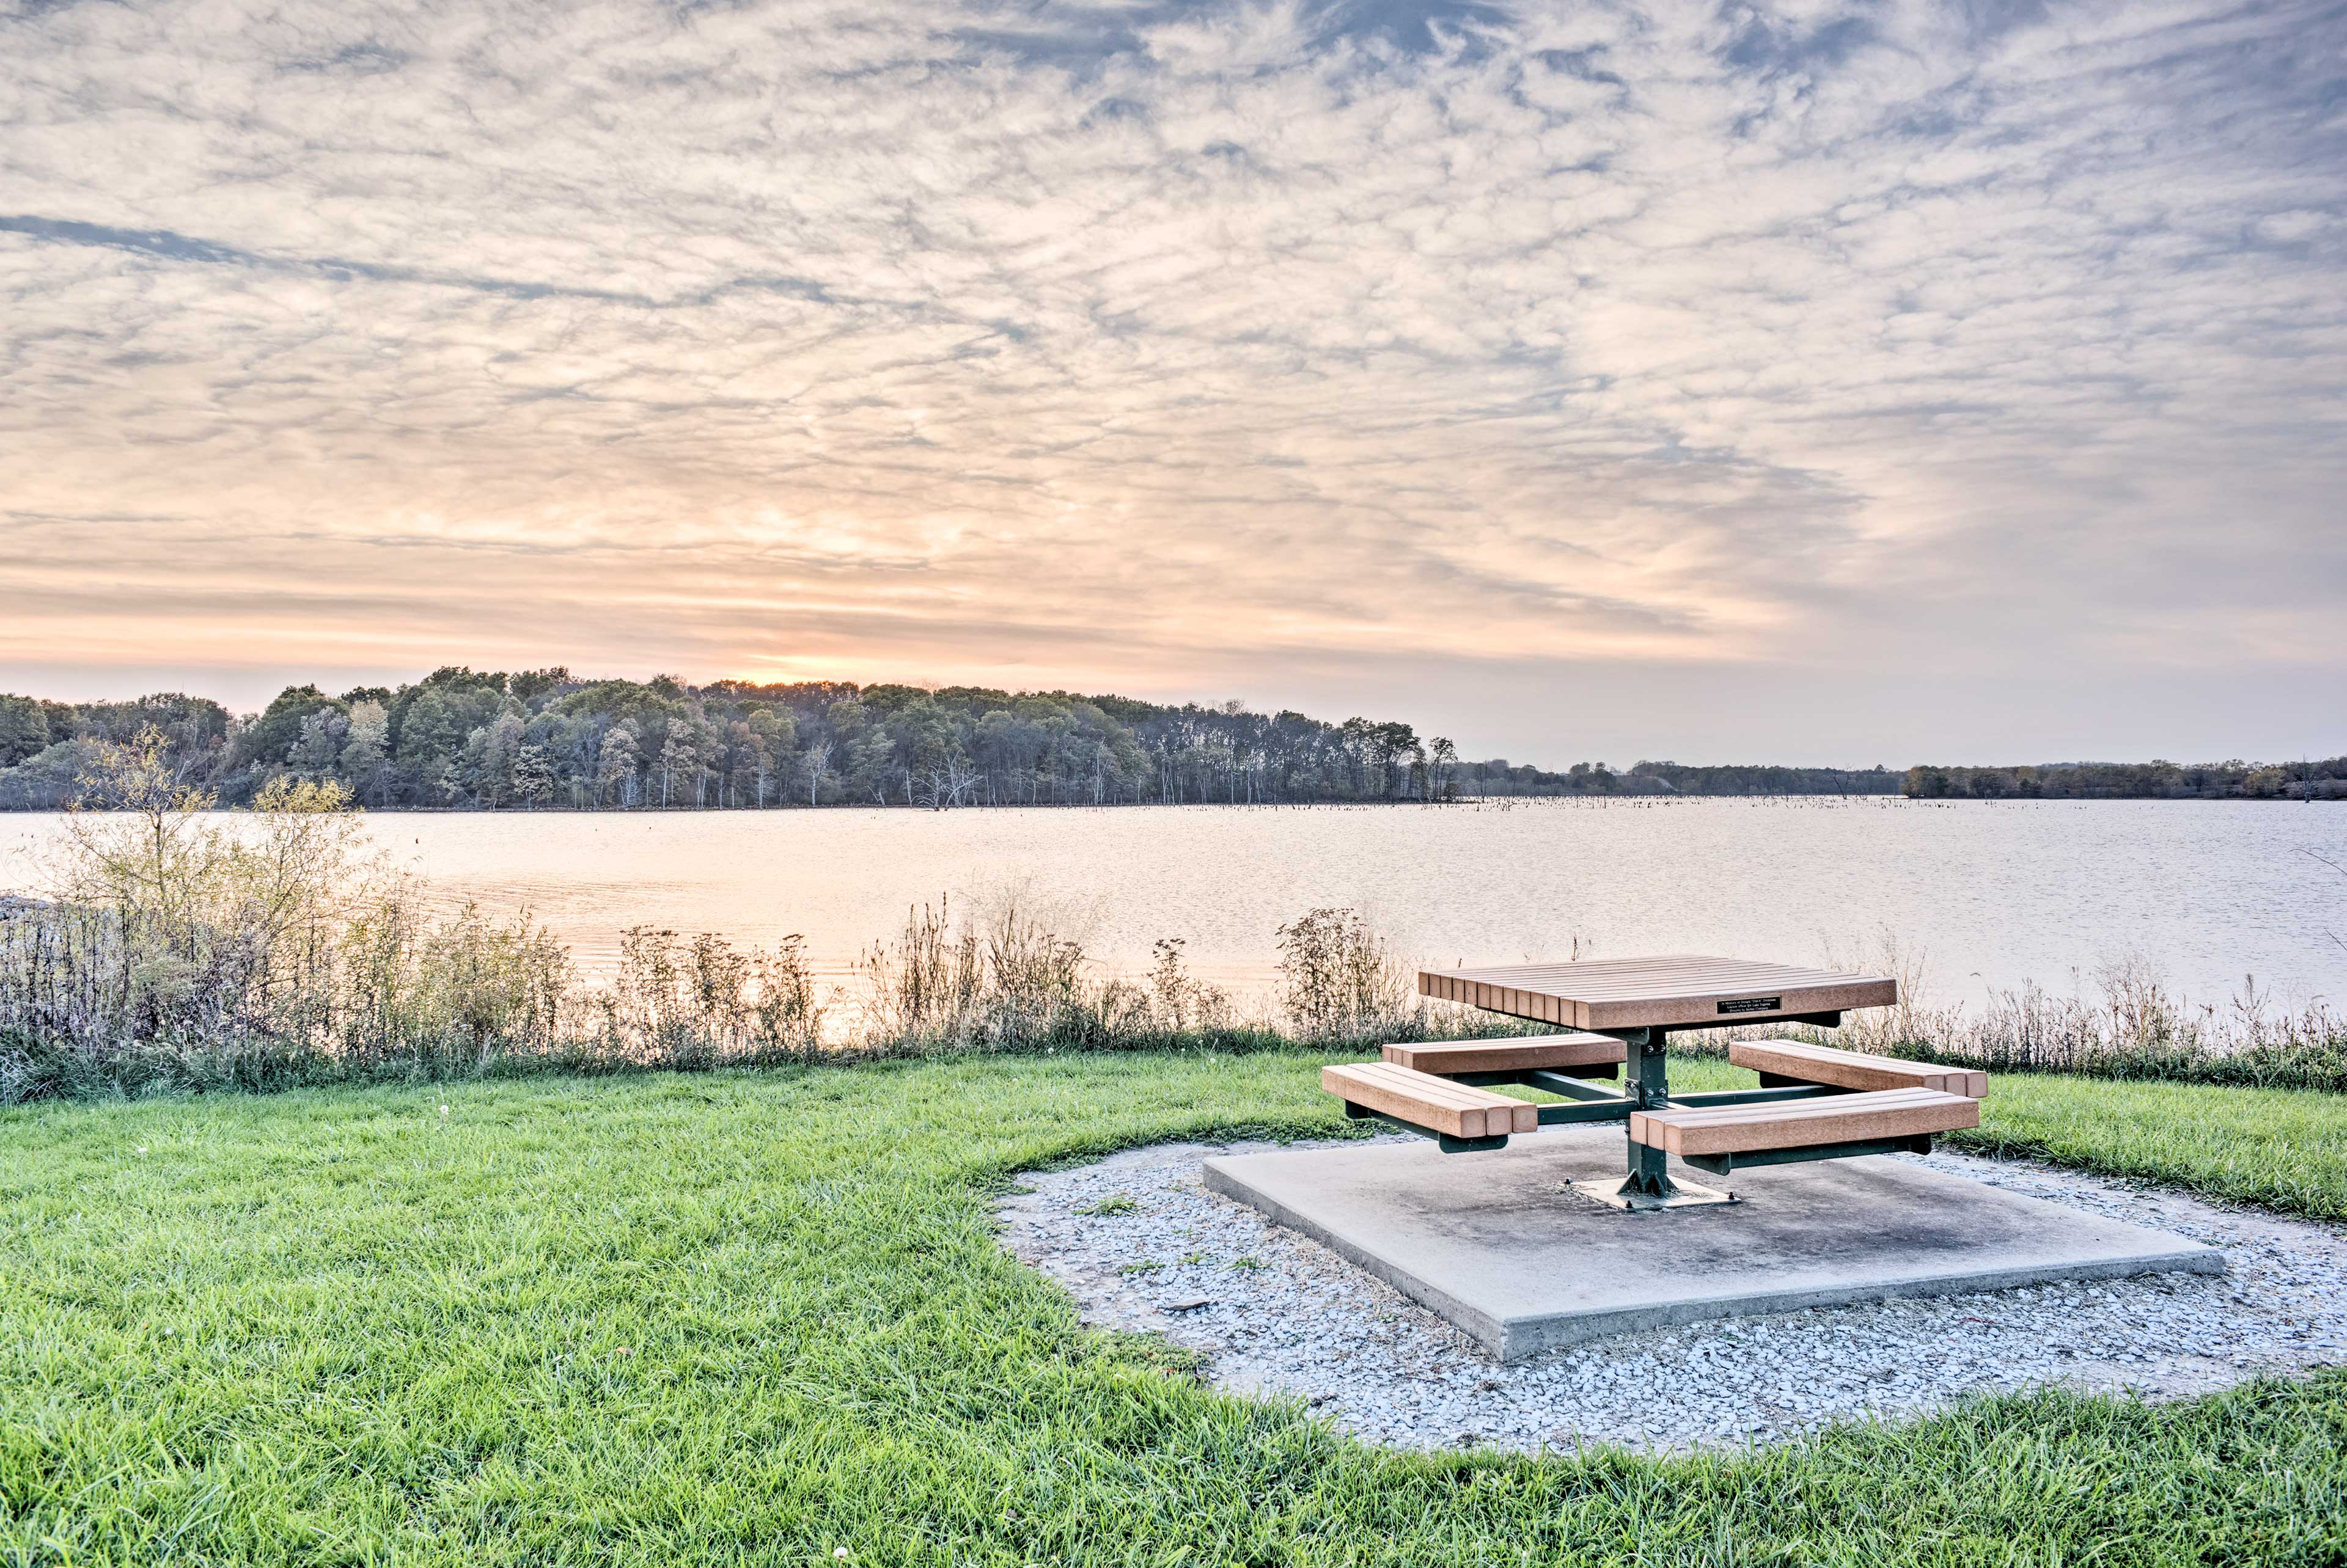 Pack up a picnic and eat in front of majestic sunset views!